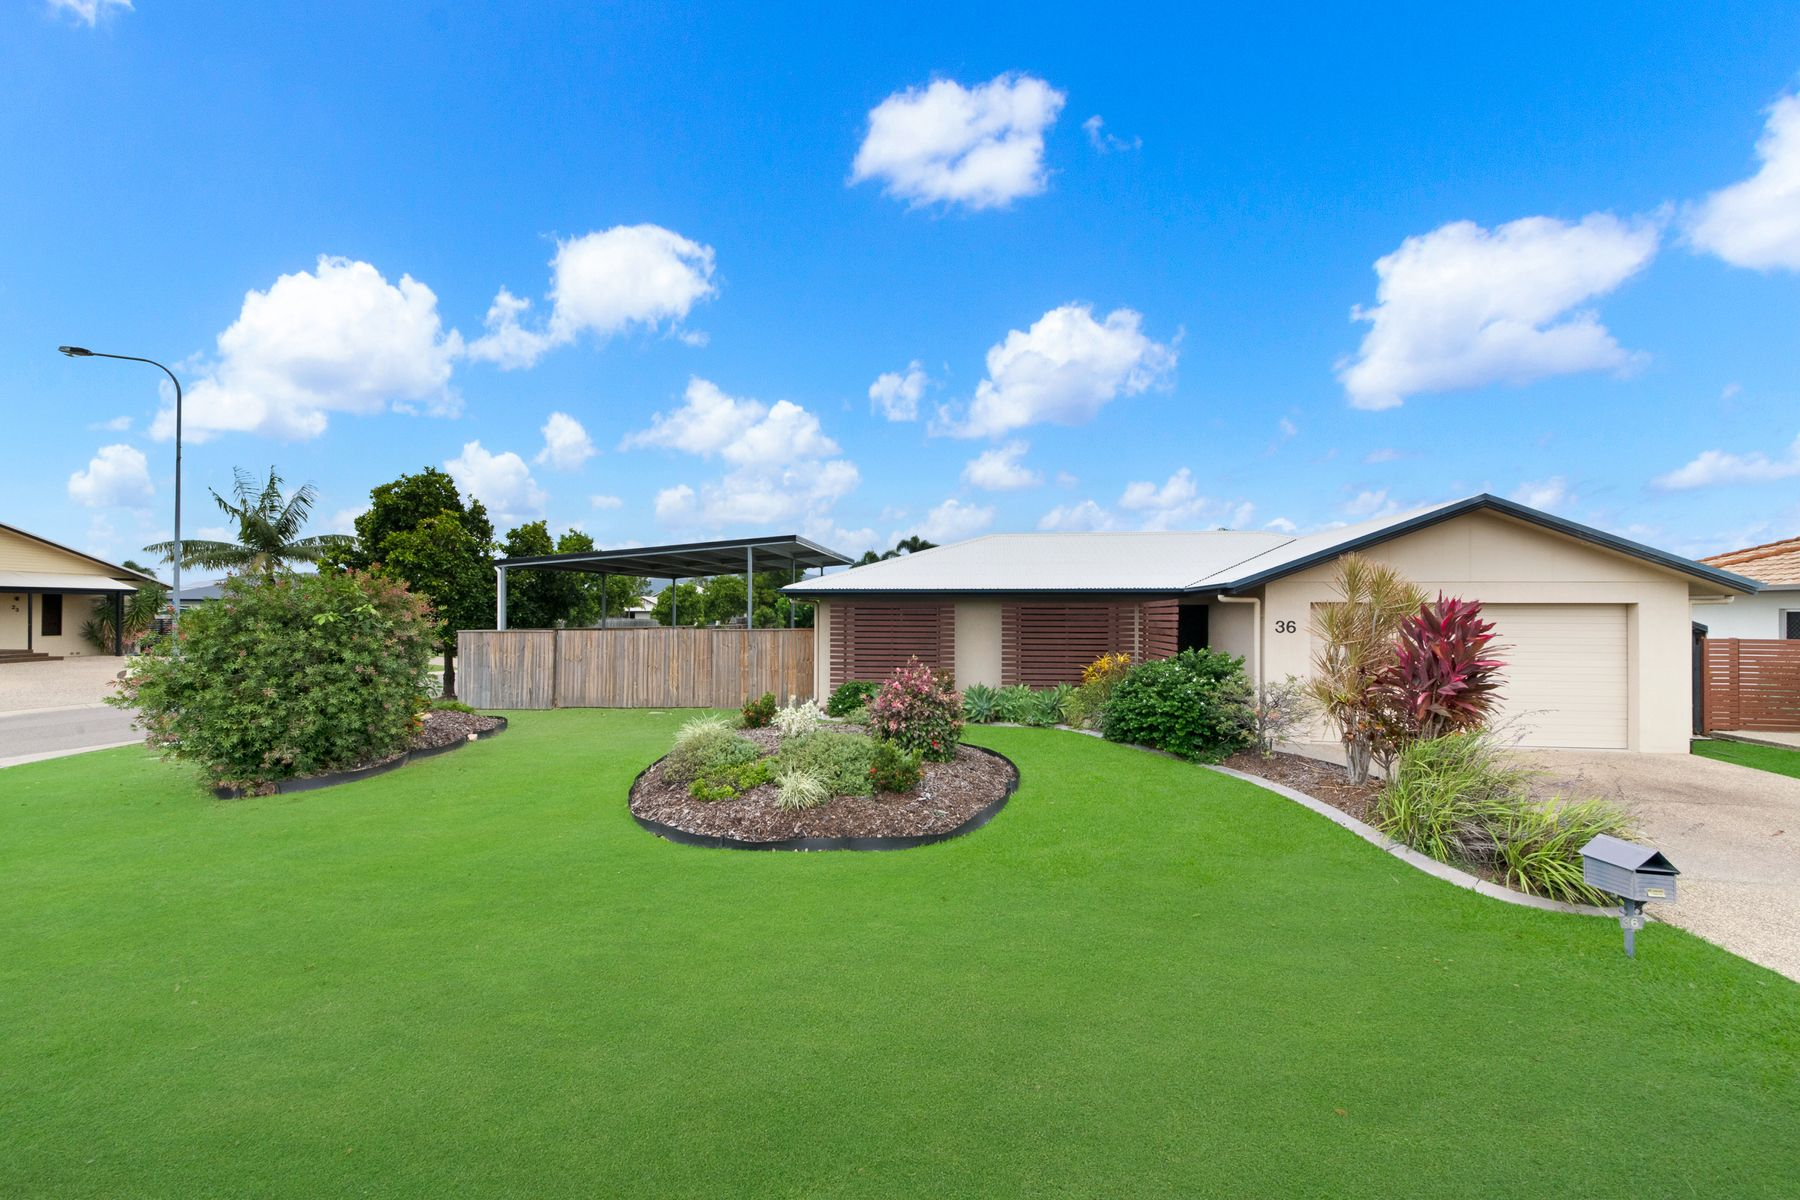 36 Bamboo Crescent, Mount Louisa, QLD 4814